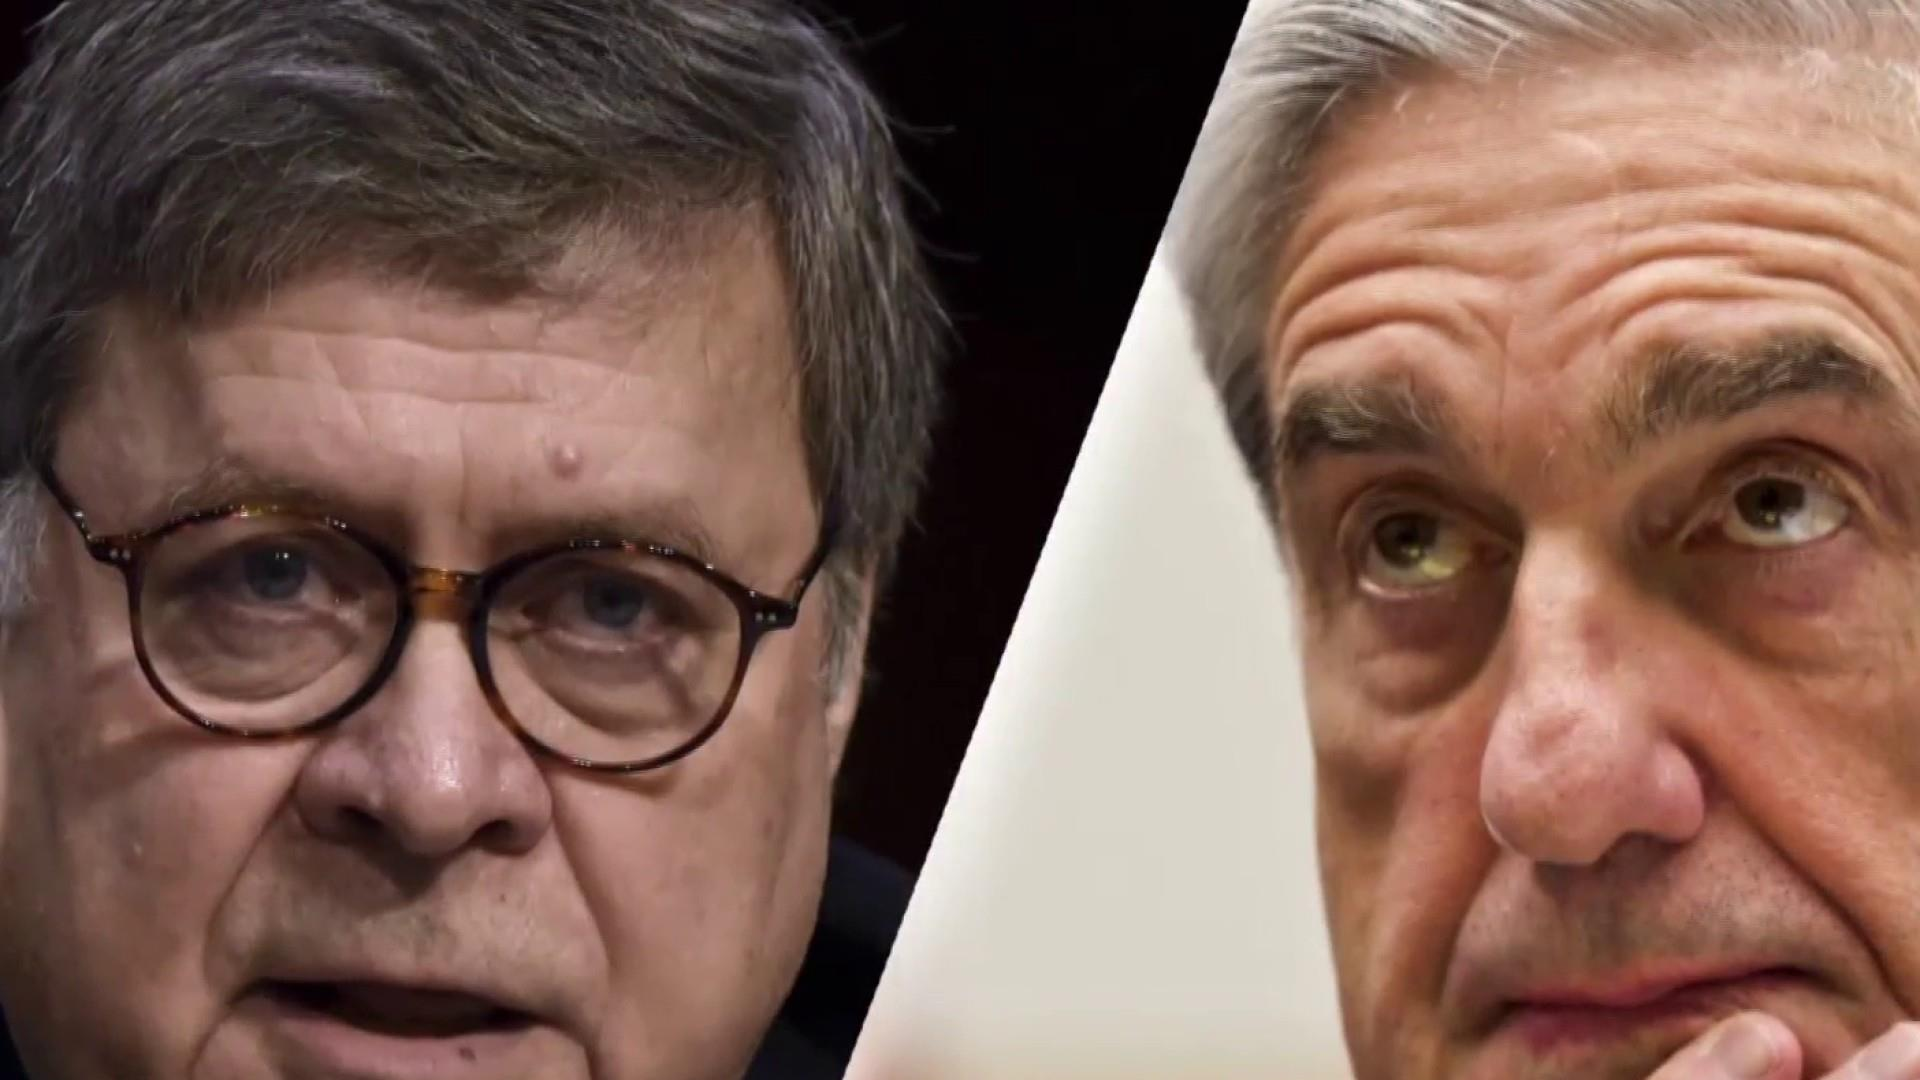 If the Mueller report tells us who wasn't prosecuted, that's significant, too